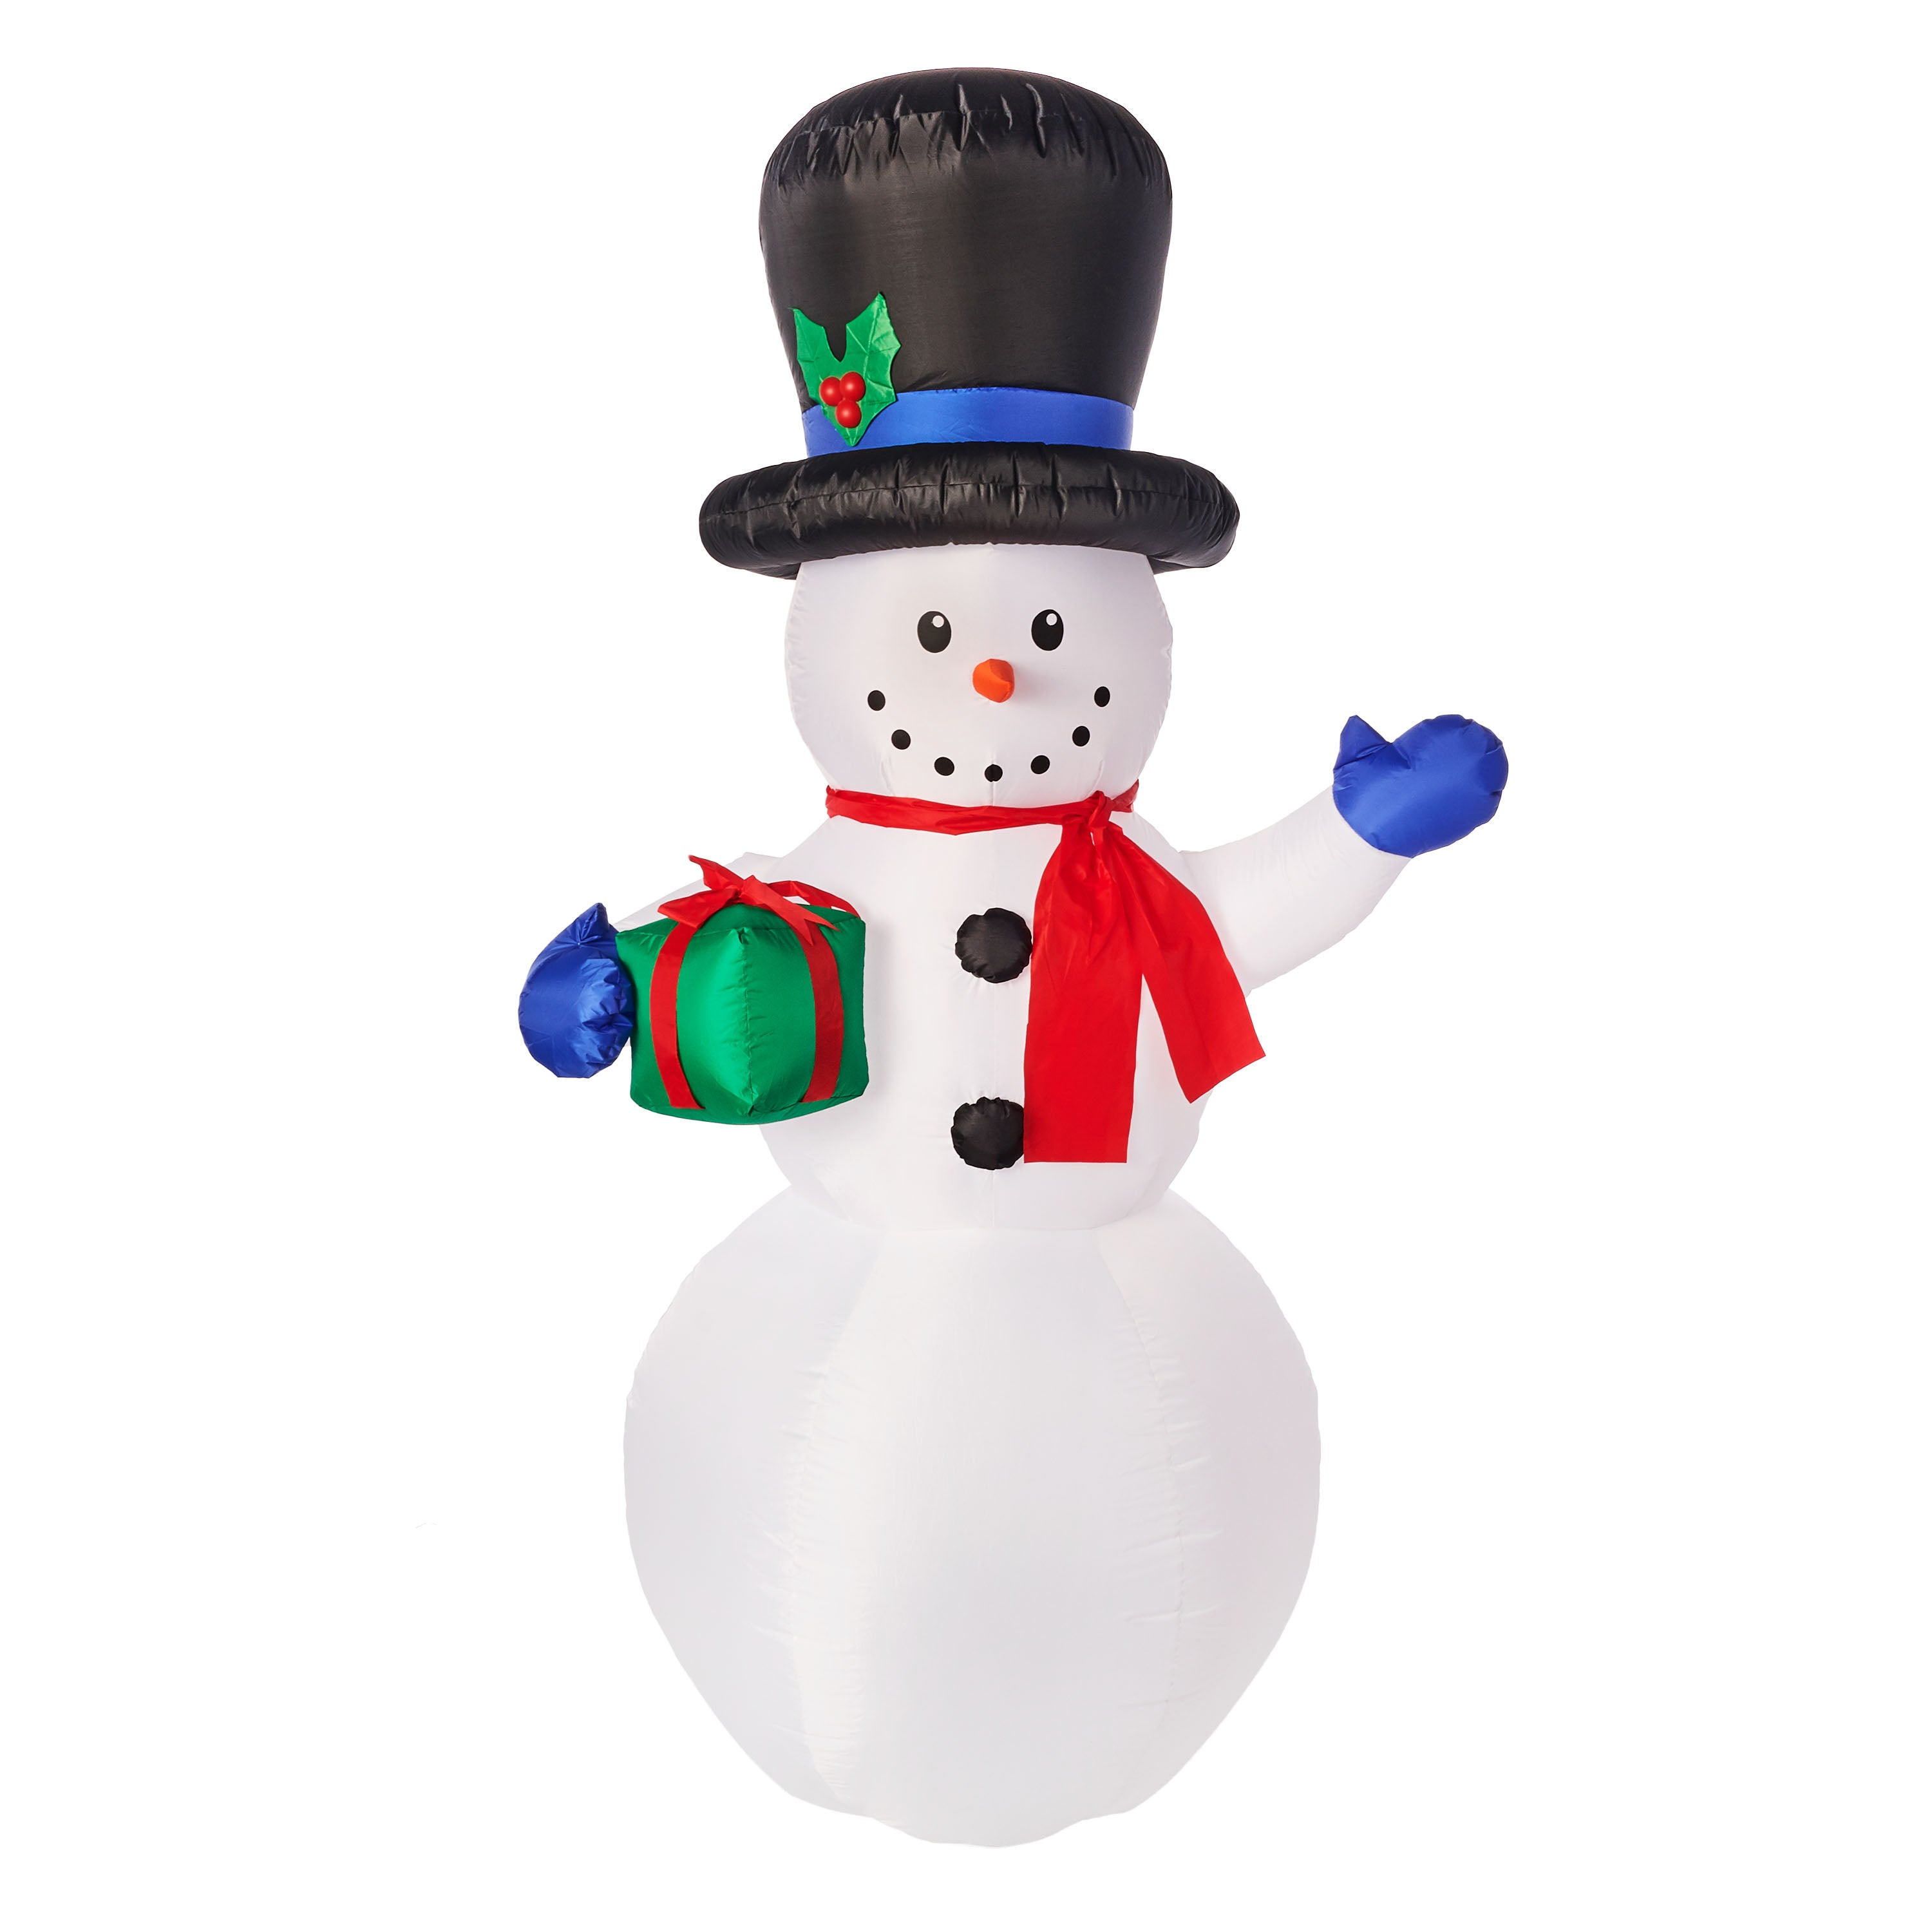 Gemmy Christmas AIRBLOWN Inflatable Snowman With Gift 7 FT Tall White